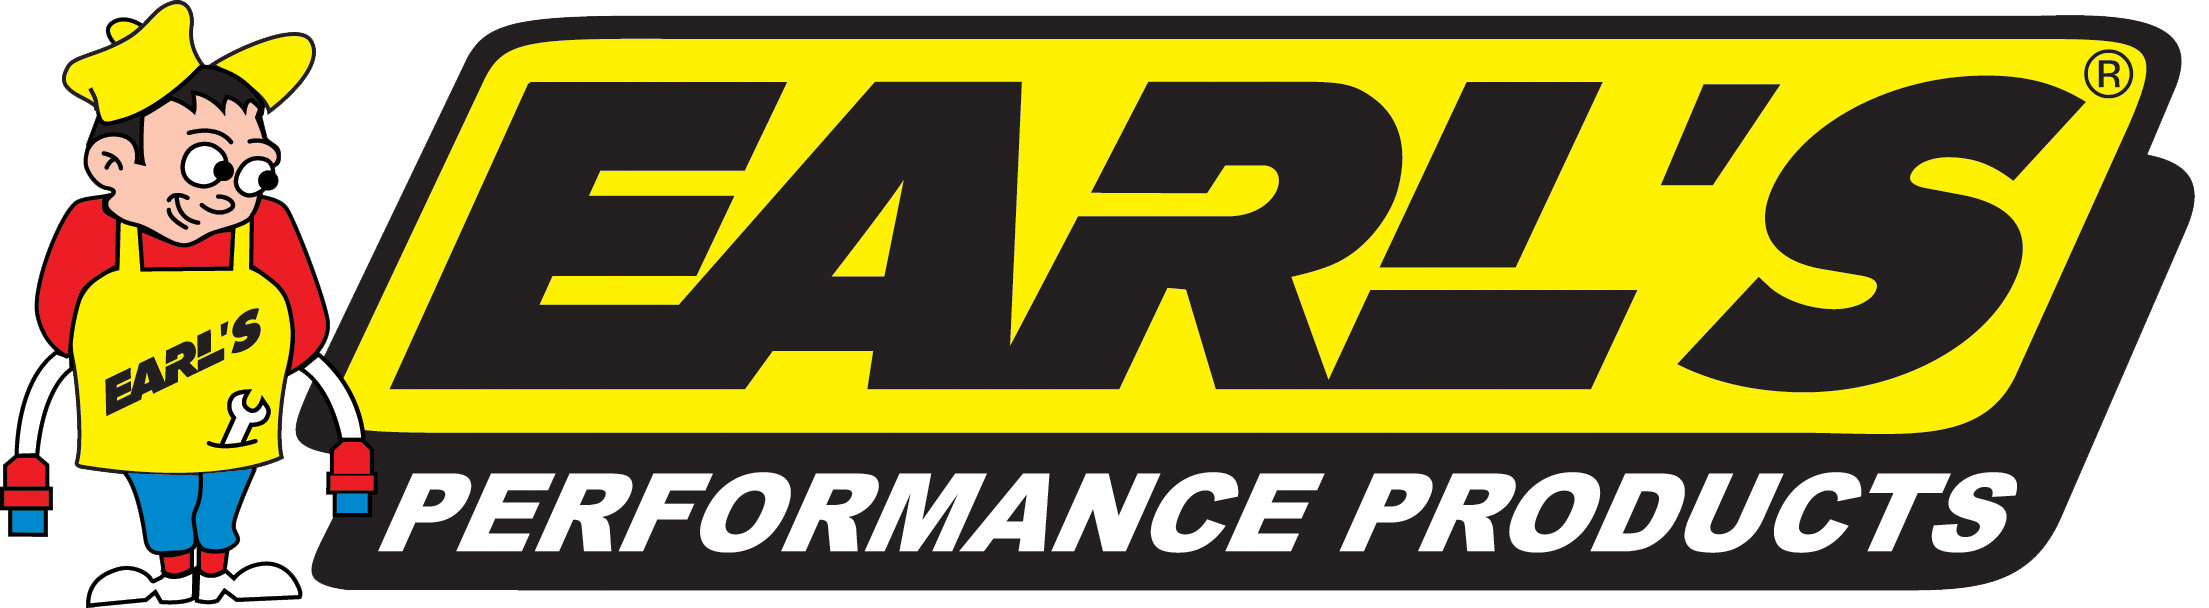 Earls Performance Products Uk Braided Hose And Fittings